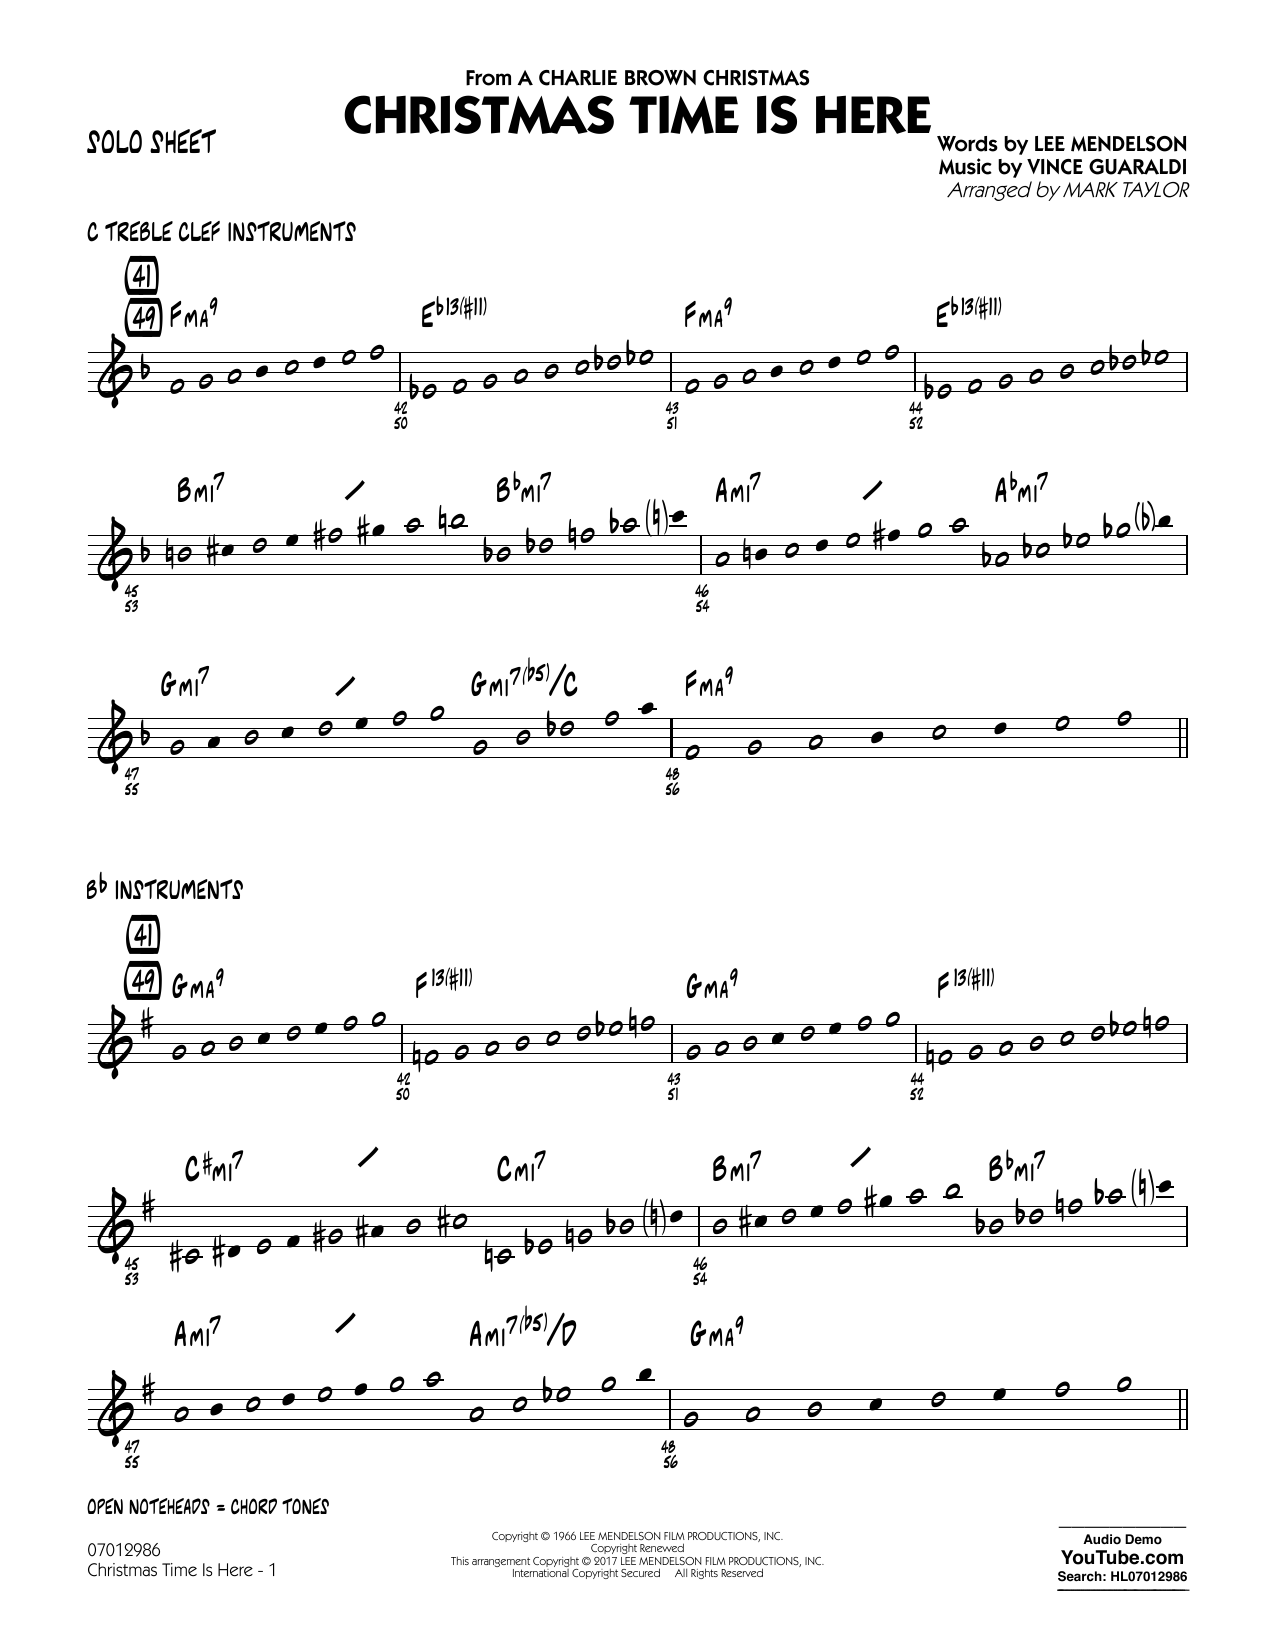 Christmas Time Is Here - Solo Sheet Sheet Music